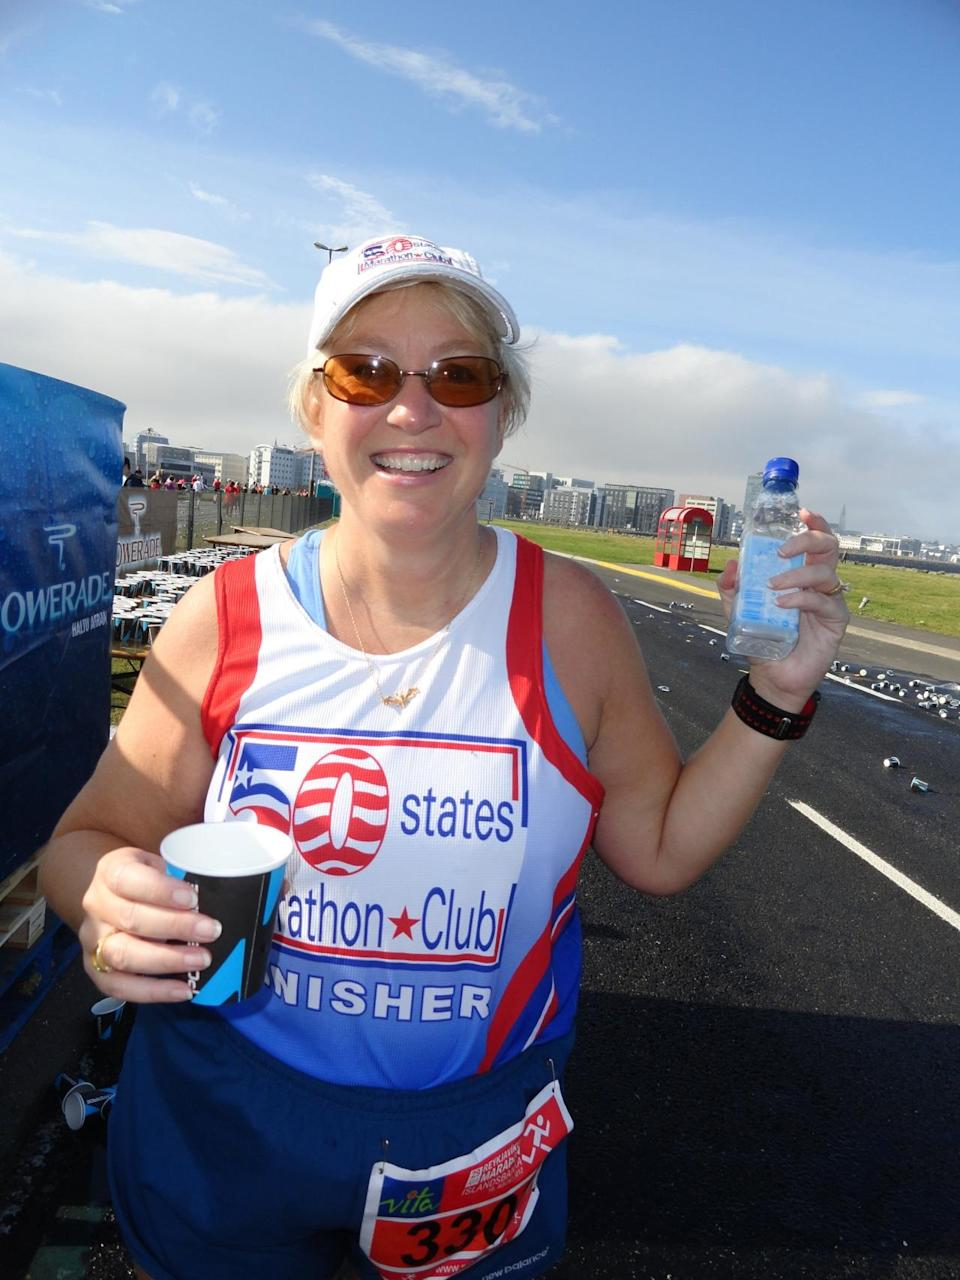 <p>I wish I had known that the most important thing about marathoning is the people I've met. I have had a chance to meet some wonderful people and I wish I could remember all the names and stories. I should have written down more anecdotes and who I ran each race with.</p><p><i>—Paula Boone, 49, Humble, Texas . Founder and membership director of the 50 States Marathon Club, finisher of 316 marathons with a personal record of 3:31:01.</i></p>